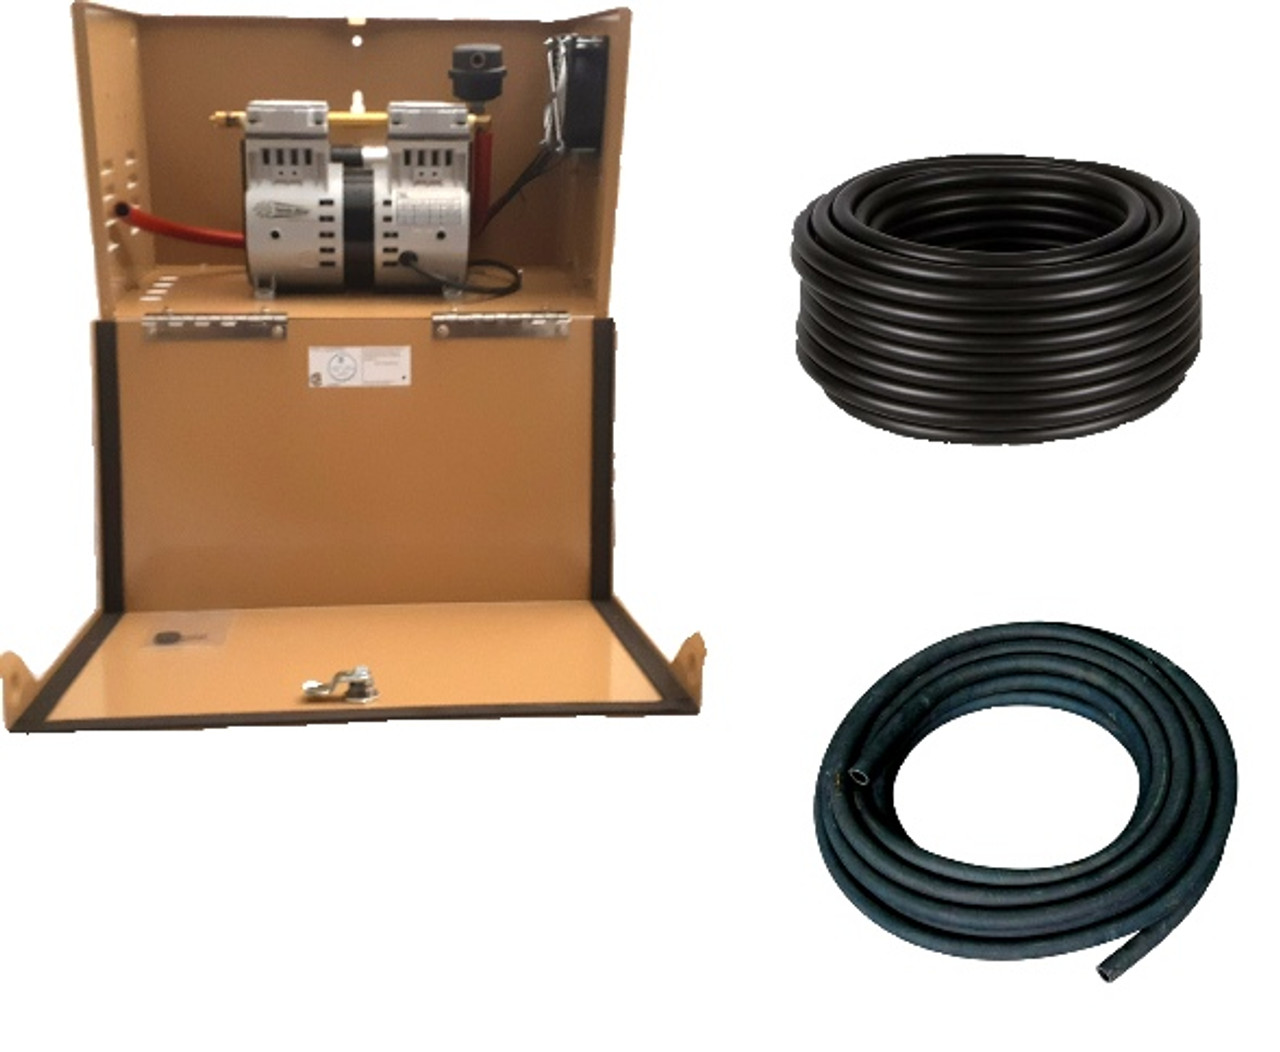 Can-Air Shallow Pond Aeration Bubbler System 2 with KM 120 compressor and Cabinet